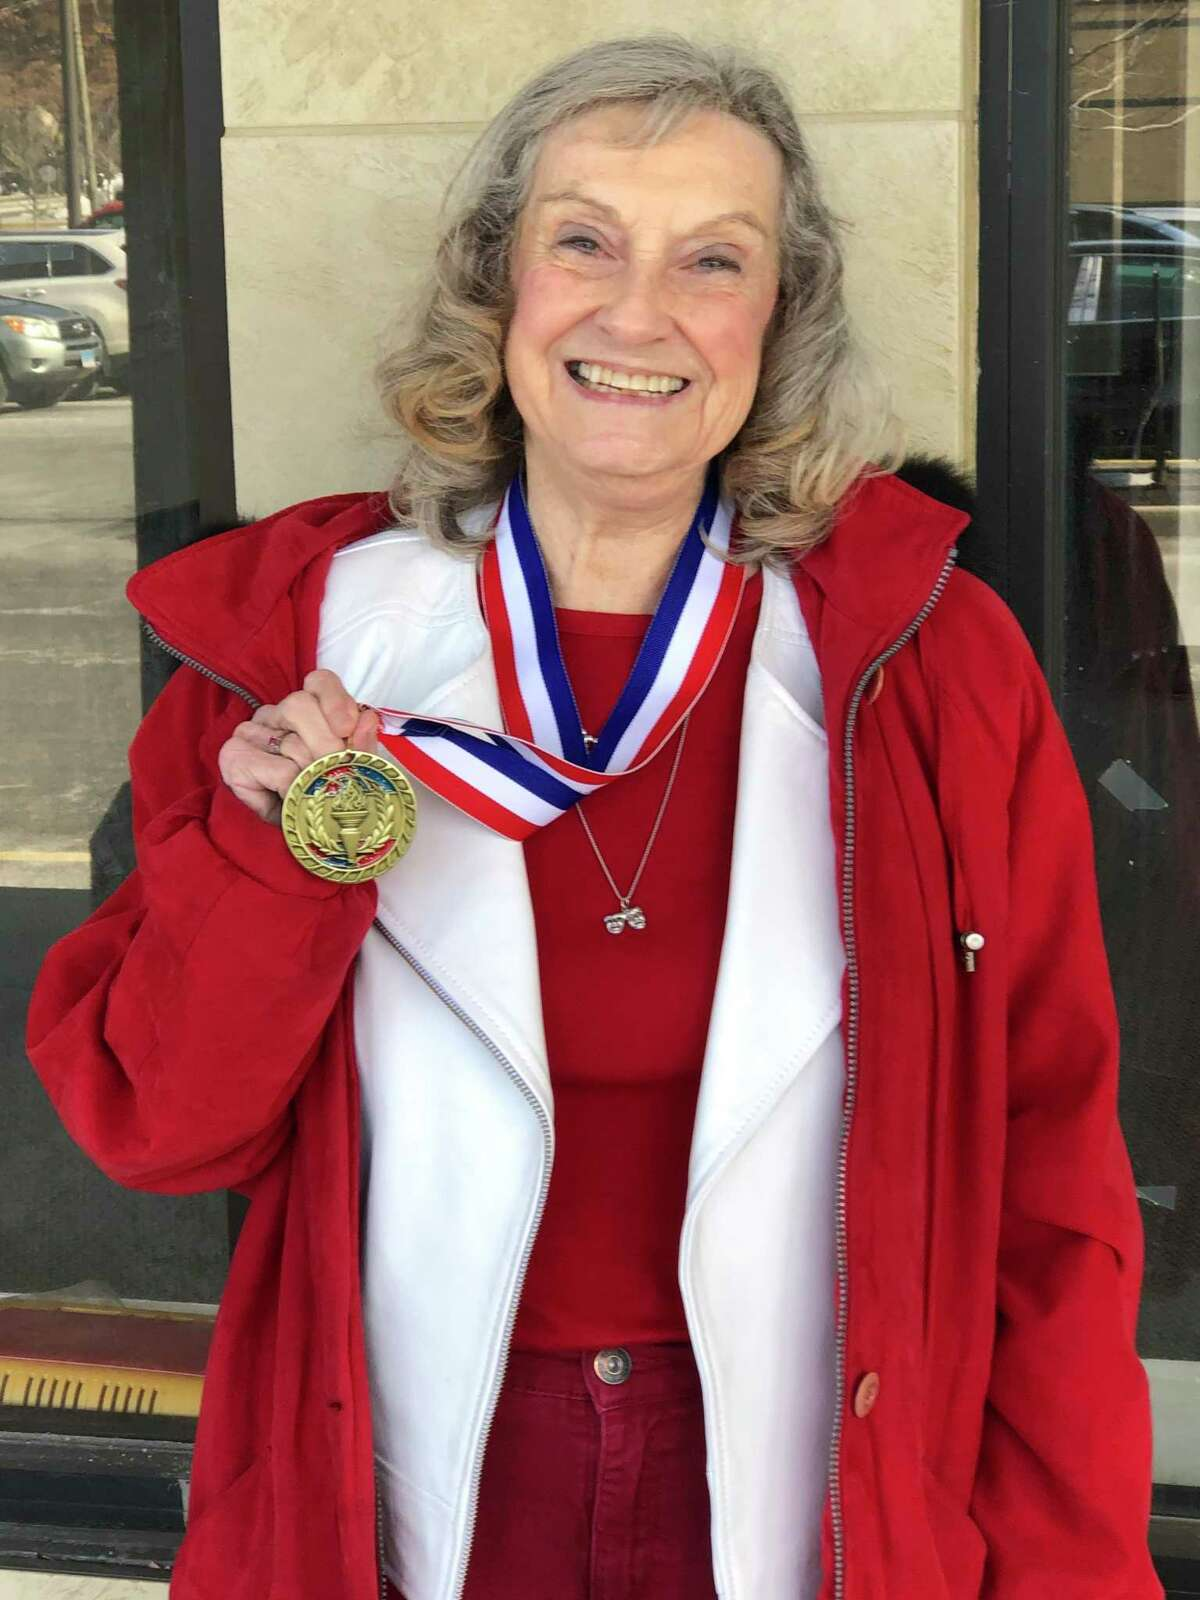 Martha (Marty) Bishop, a local storyteller, won the Toastmasters District 53 Tall Tale Contest in March 2019.